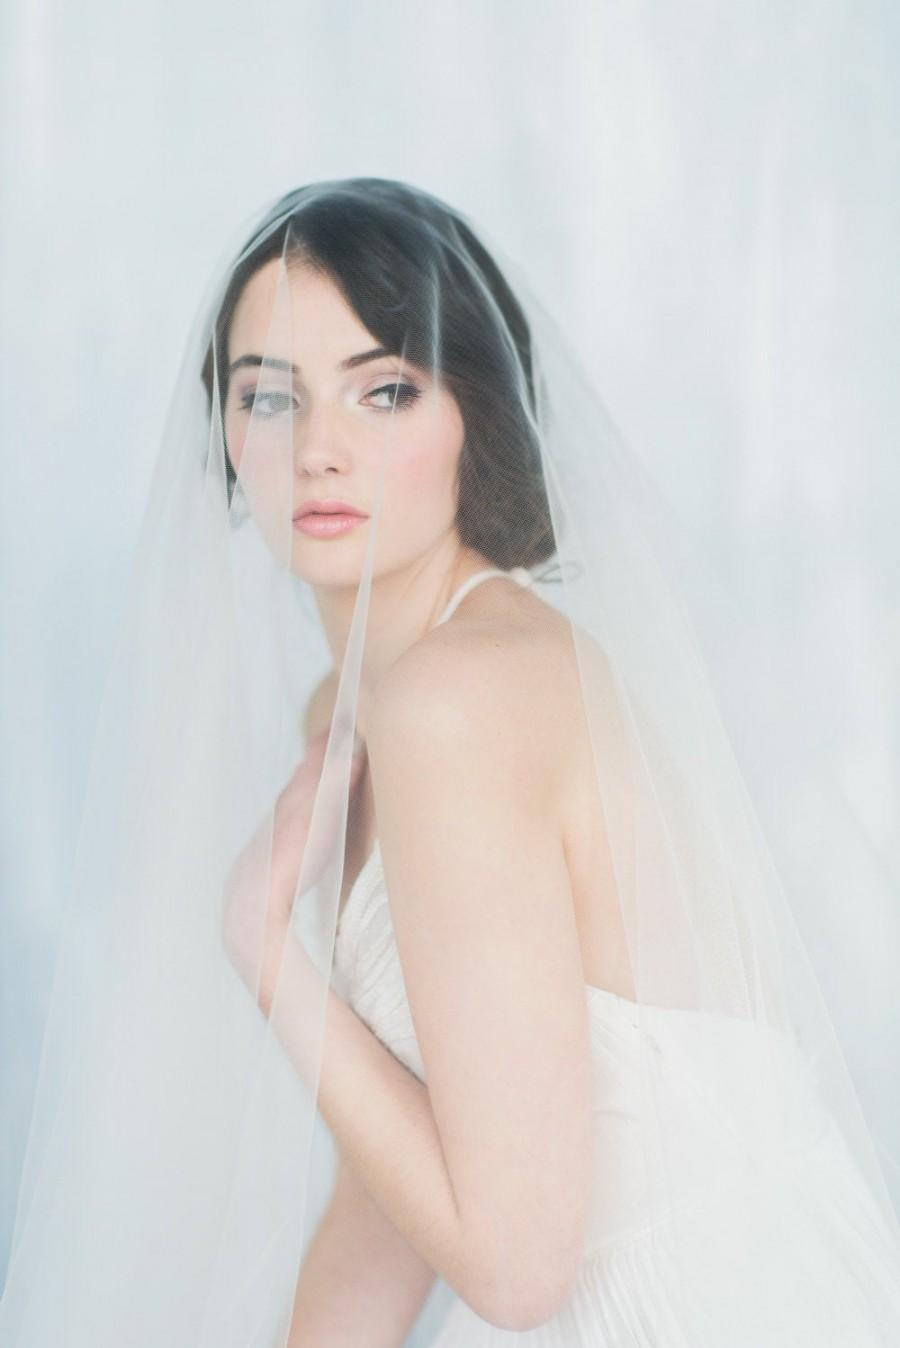 زفاف - Ivory Tulle Drop Veil, Off White Blusher Veil, Circle Veil, White Wedding Veil, Simple Modern Soft Veil, Fingertip Veil, NATALIA